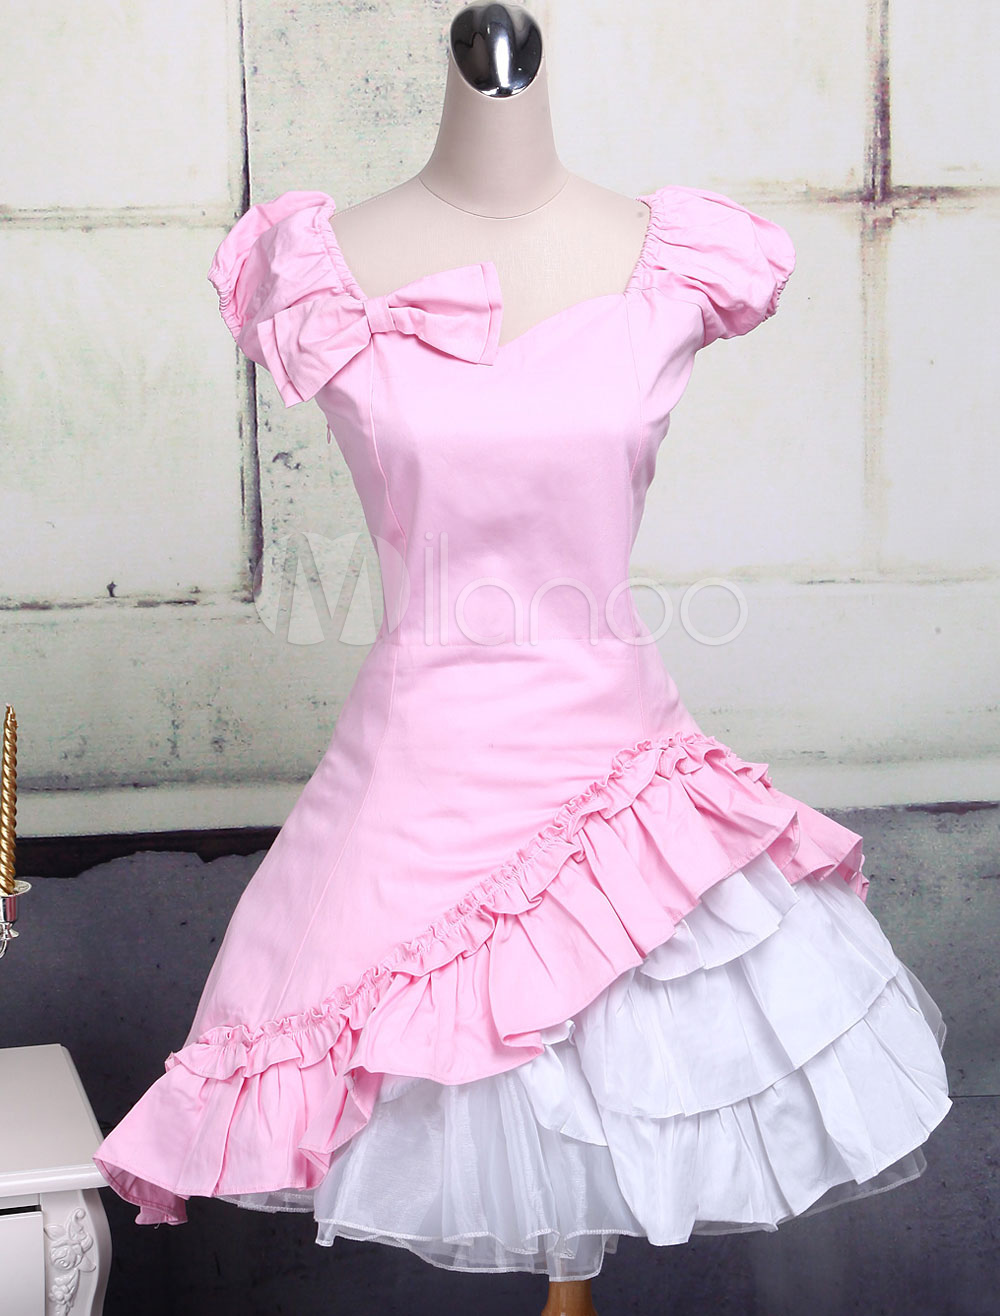 Buy Classic Cotton Short Sleeves Ruffle Lolita Dress for $75.59 in Milanoo store